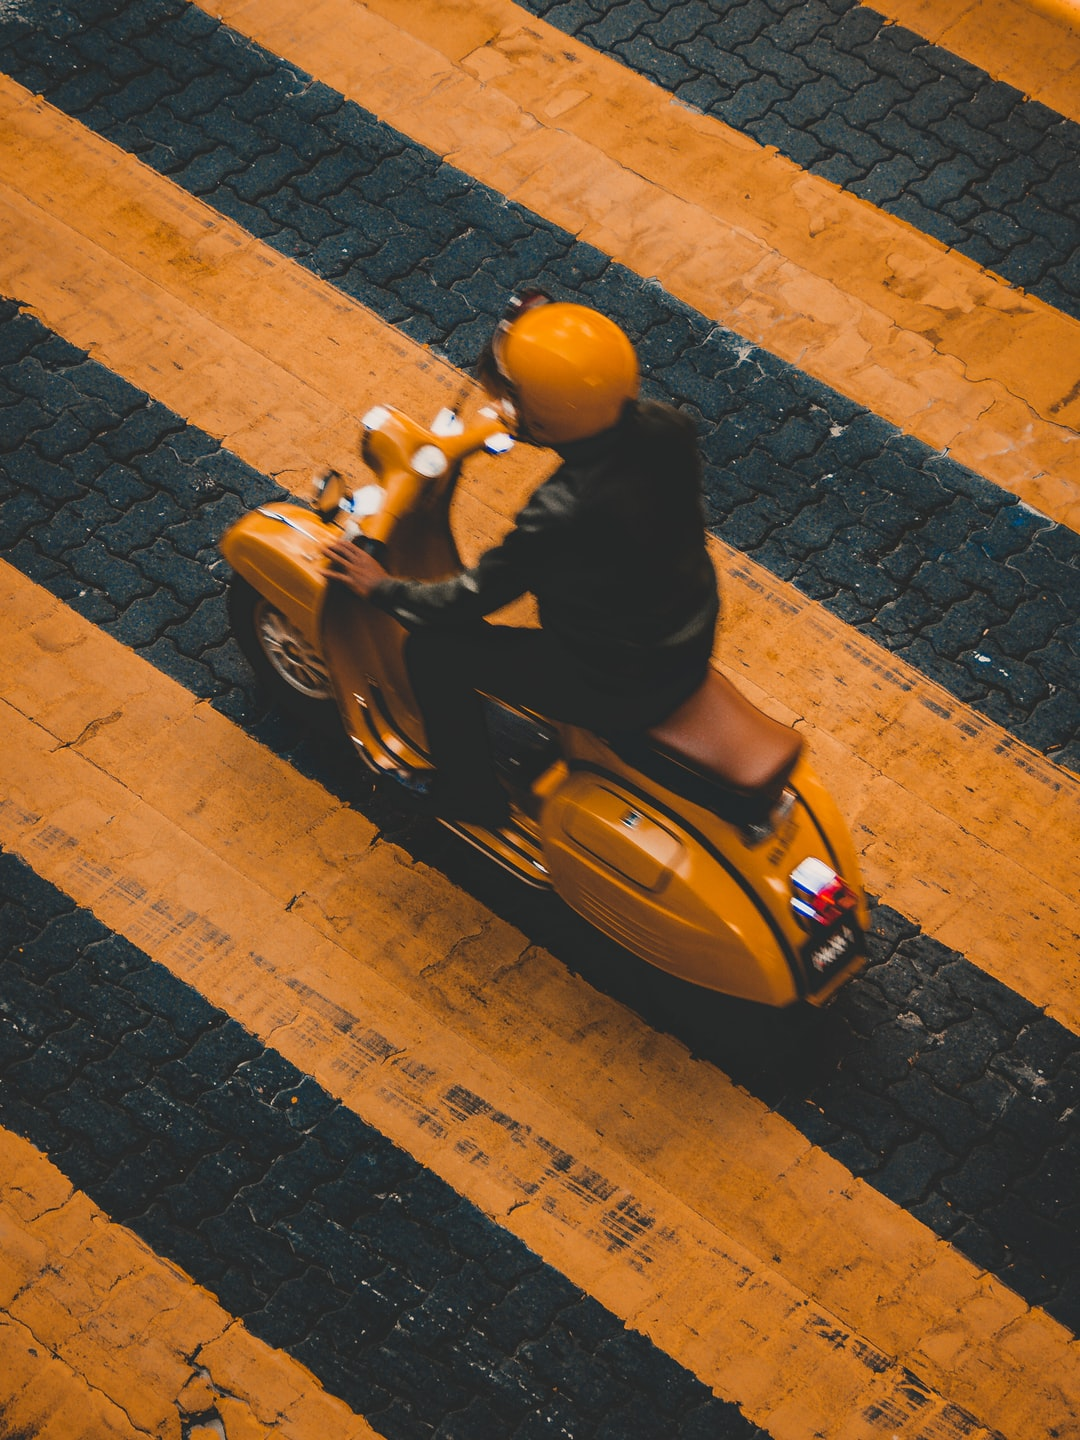 I was at the bridge  for 1 hour with my camera to get an awesome shot. I was walking around and planing what should i capture then i  saw a vespa coming toward me  ( in my mind boom i'm gonna capture with the black and yellow stripes ) and i'm so lucky the vespa yellow and it goes between the yellow stripes. One more thing i don't want the vespa to be freeze in the image so i calculate and i set the shutter speed to two hundred so i can get the motion blur of the vespa. Lastly the image is so beautiful and captured on time . I really love this image so much and it's a challenging shot.